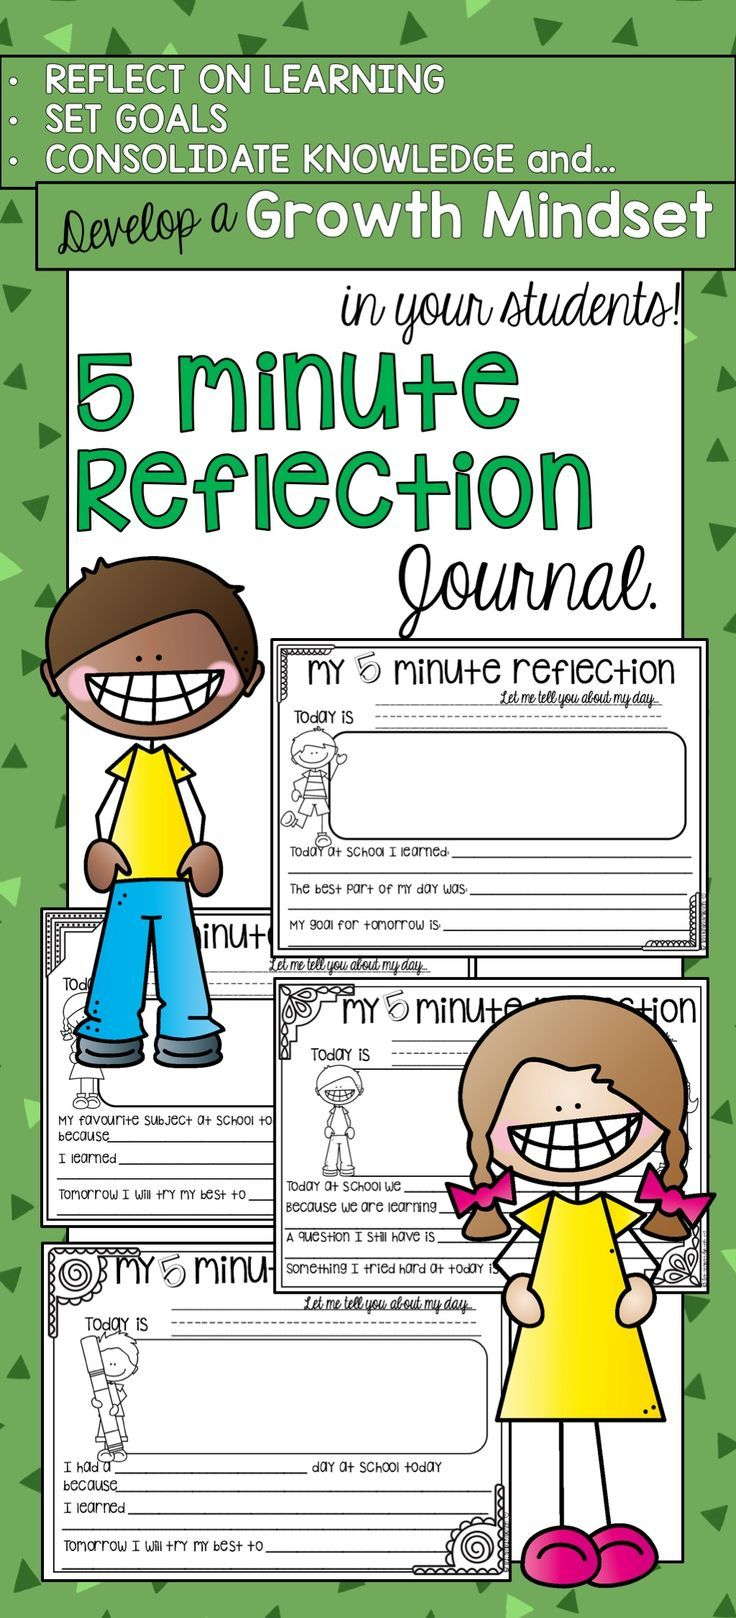 reflective journal example for student teachers